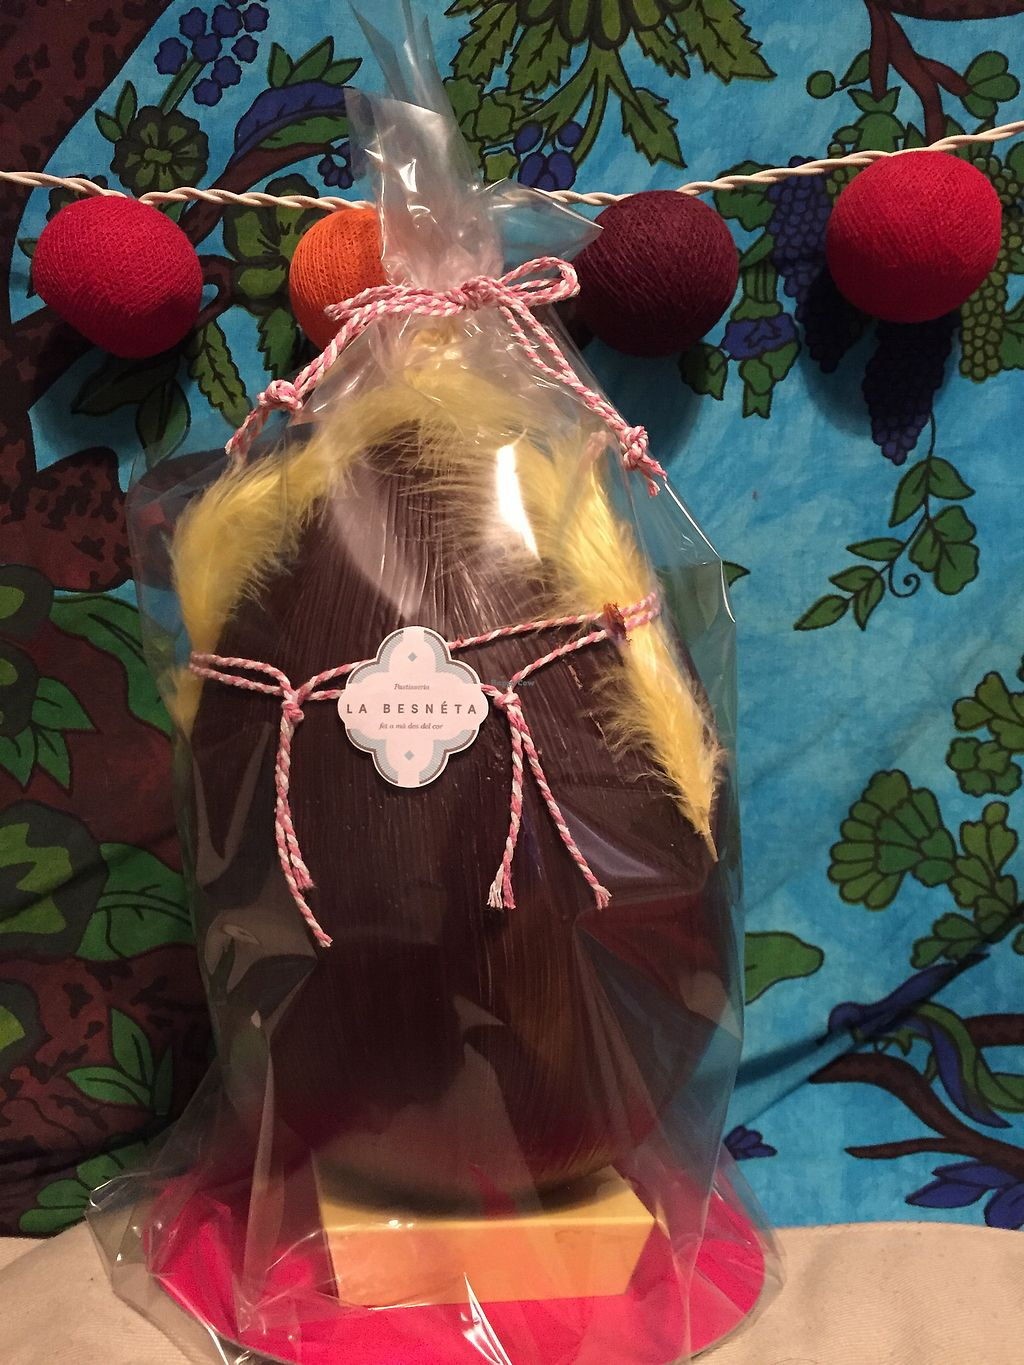 """Photo of La Besneta  by <a href=""""/members/profile/Jameskille"""">Jameskille</a> <br/>Handmade Easter Egg <br/> March 31, 2018  - <a href='/contact/abuse/image/62257/379016'>Report</a>"""